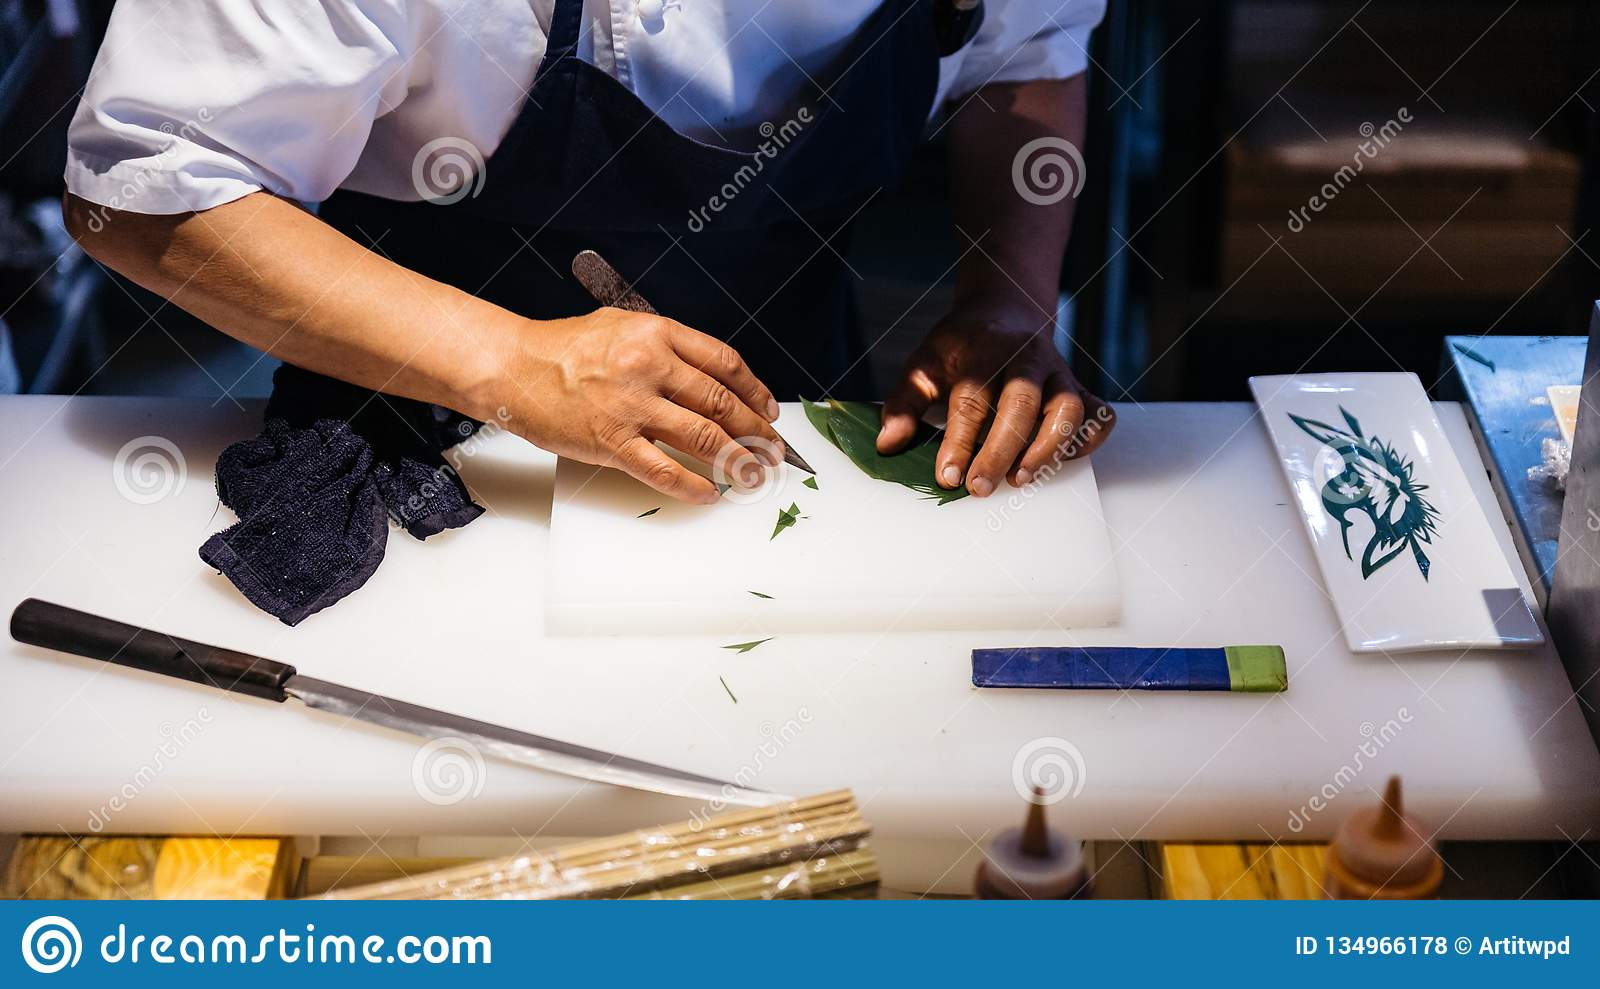 Japanese Chef Created Leaf Art By Knife Cutting A Leaf For Decorate A Meal On White Plastic Chopping Board Stock Photo Image Of Nutrition Health 134966178